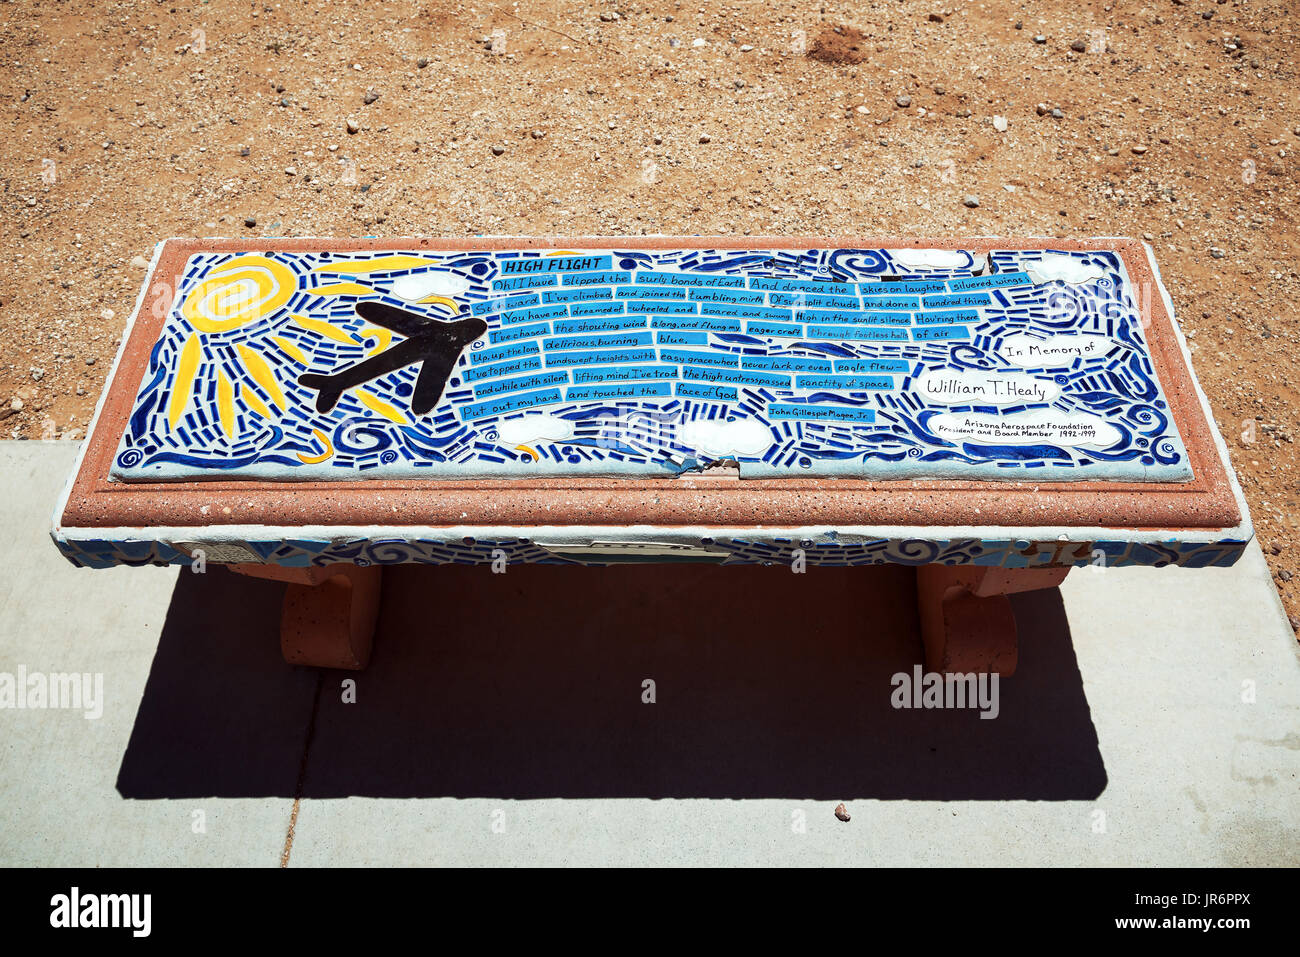 Original colorful bench from Arizona  aerospace foundation, Pima Air & Space Museum - largest non-government funded aviation and space museums in the  - Stock Image